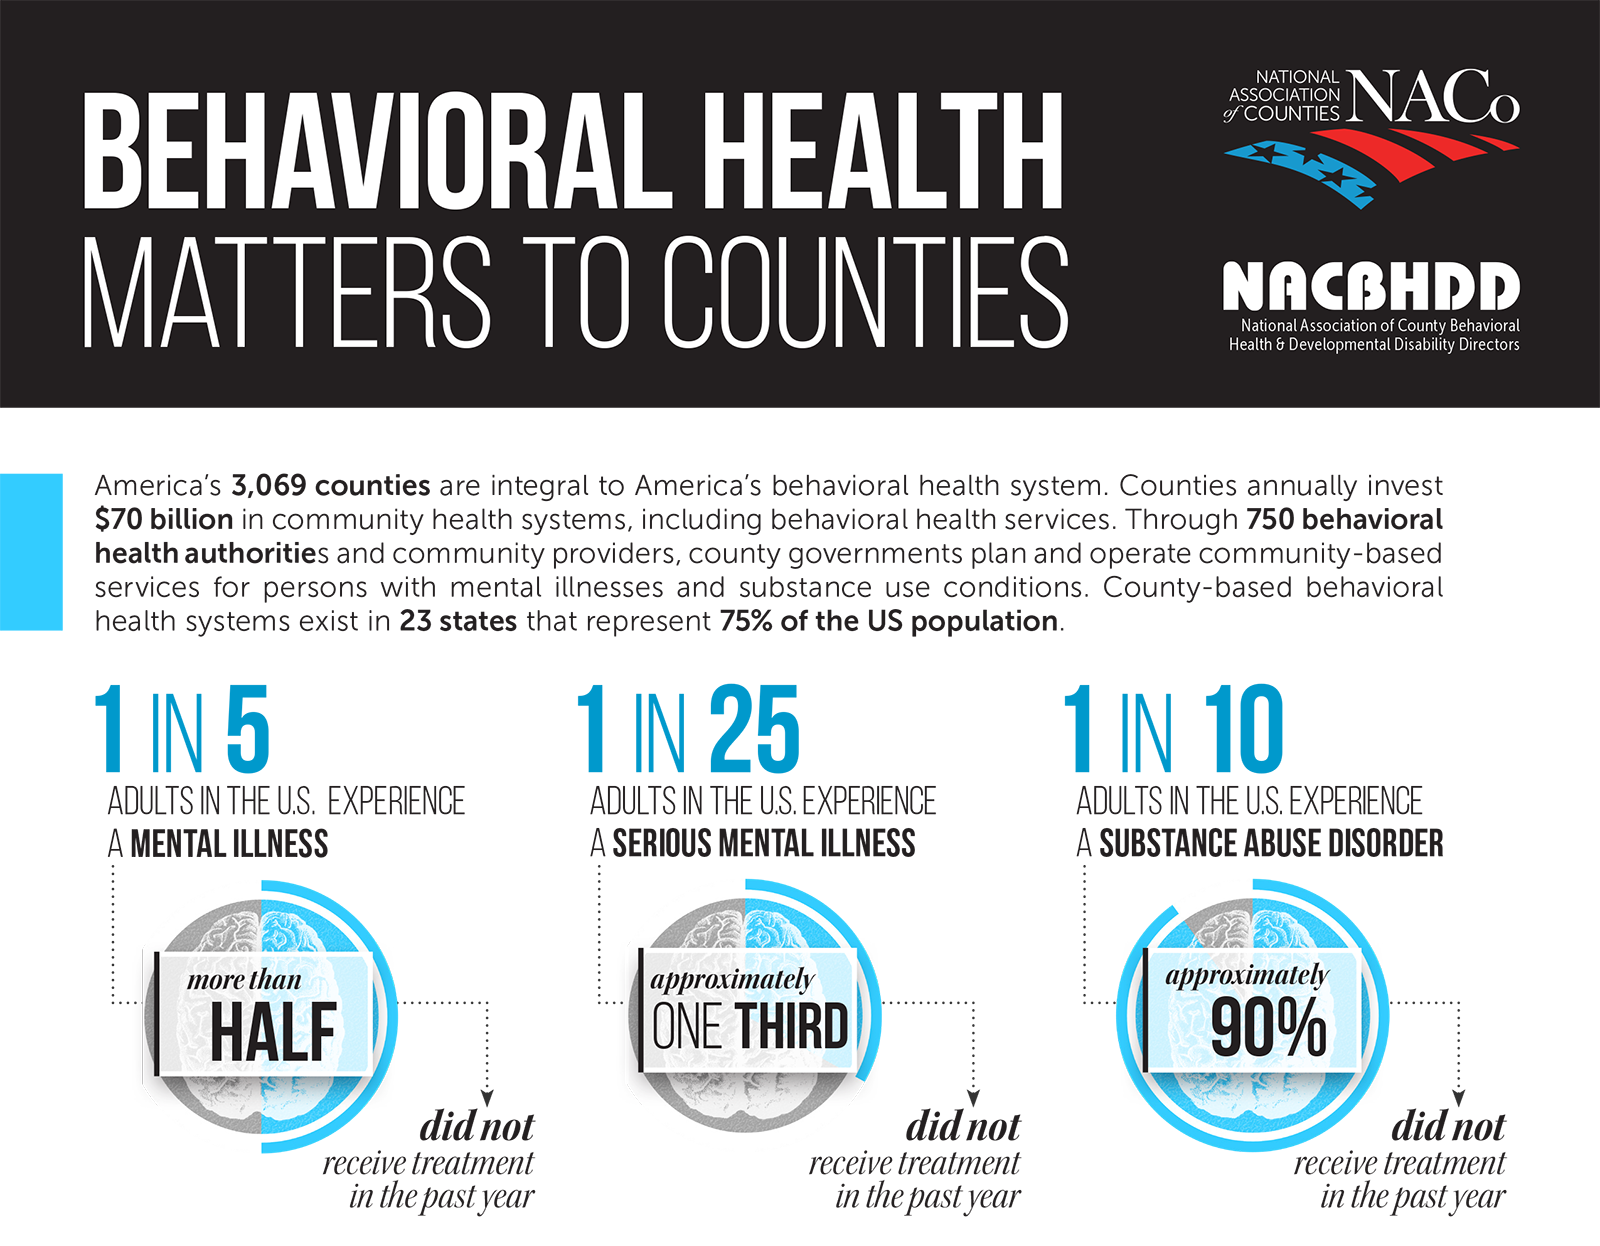 Behavioral Health Matters to Counties | NACo